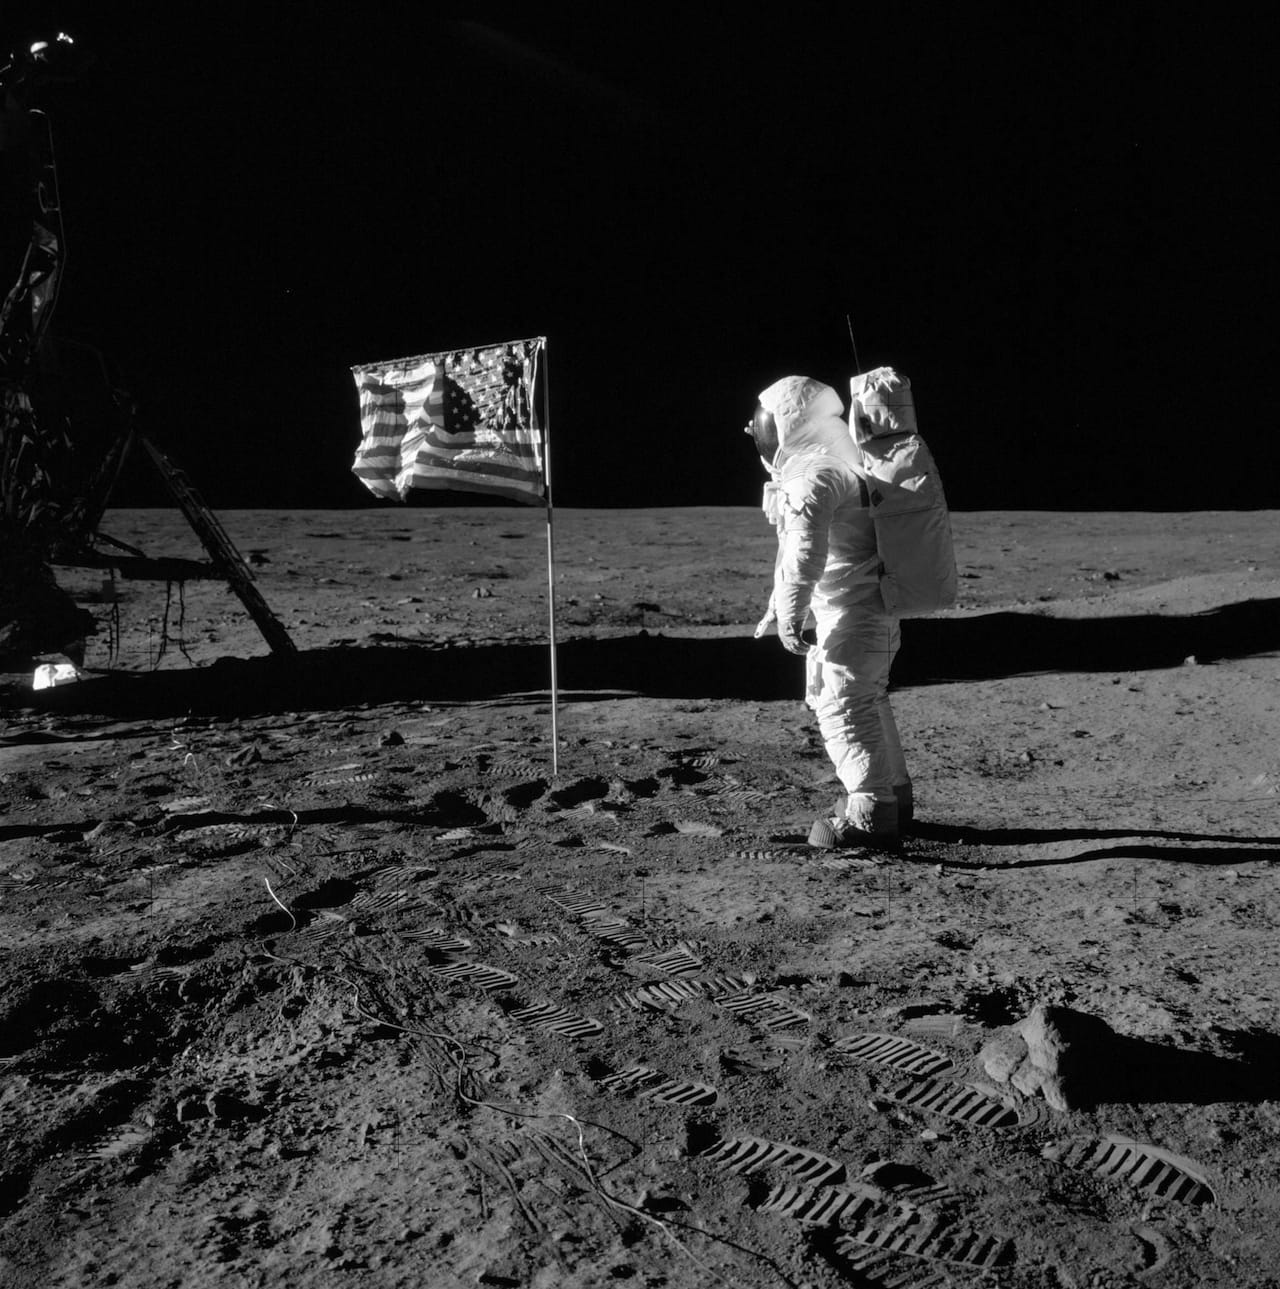 Buzz Aldrin salutes the flag on the Moon's surface, Apollo 11 mission time: 110:10:33. (Aldrin's fingertips can be seen on the far side of his helmet.) Image AS11-40-5874, courtesy NASA